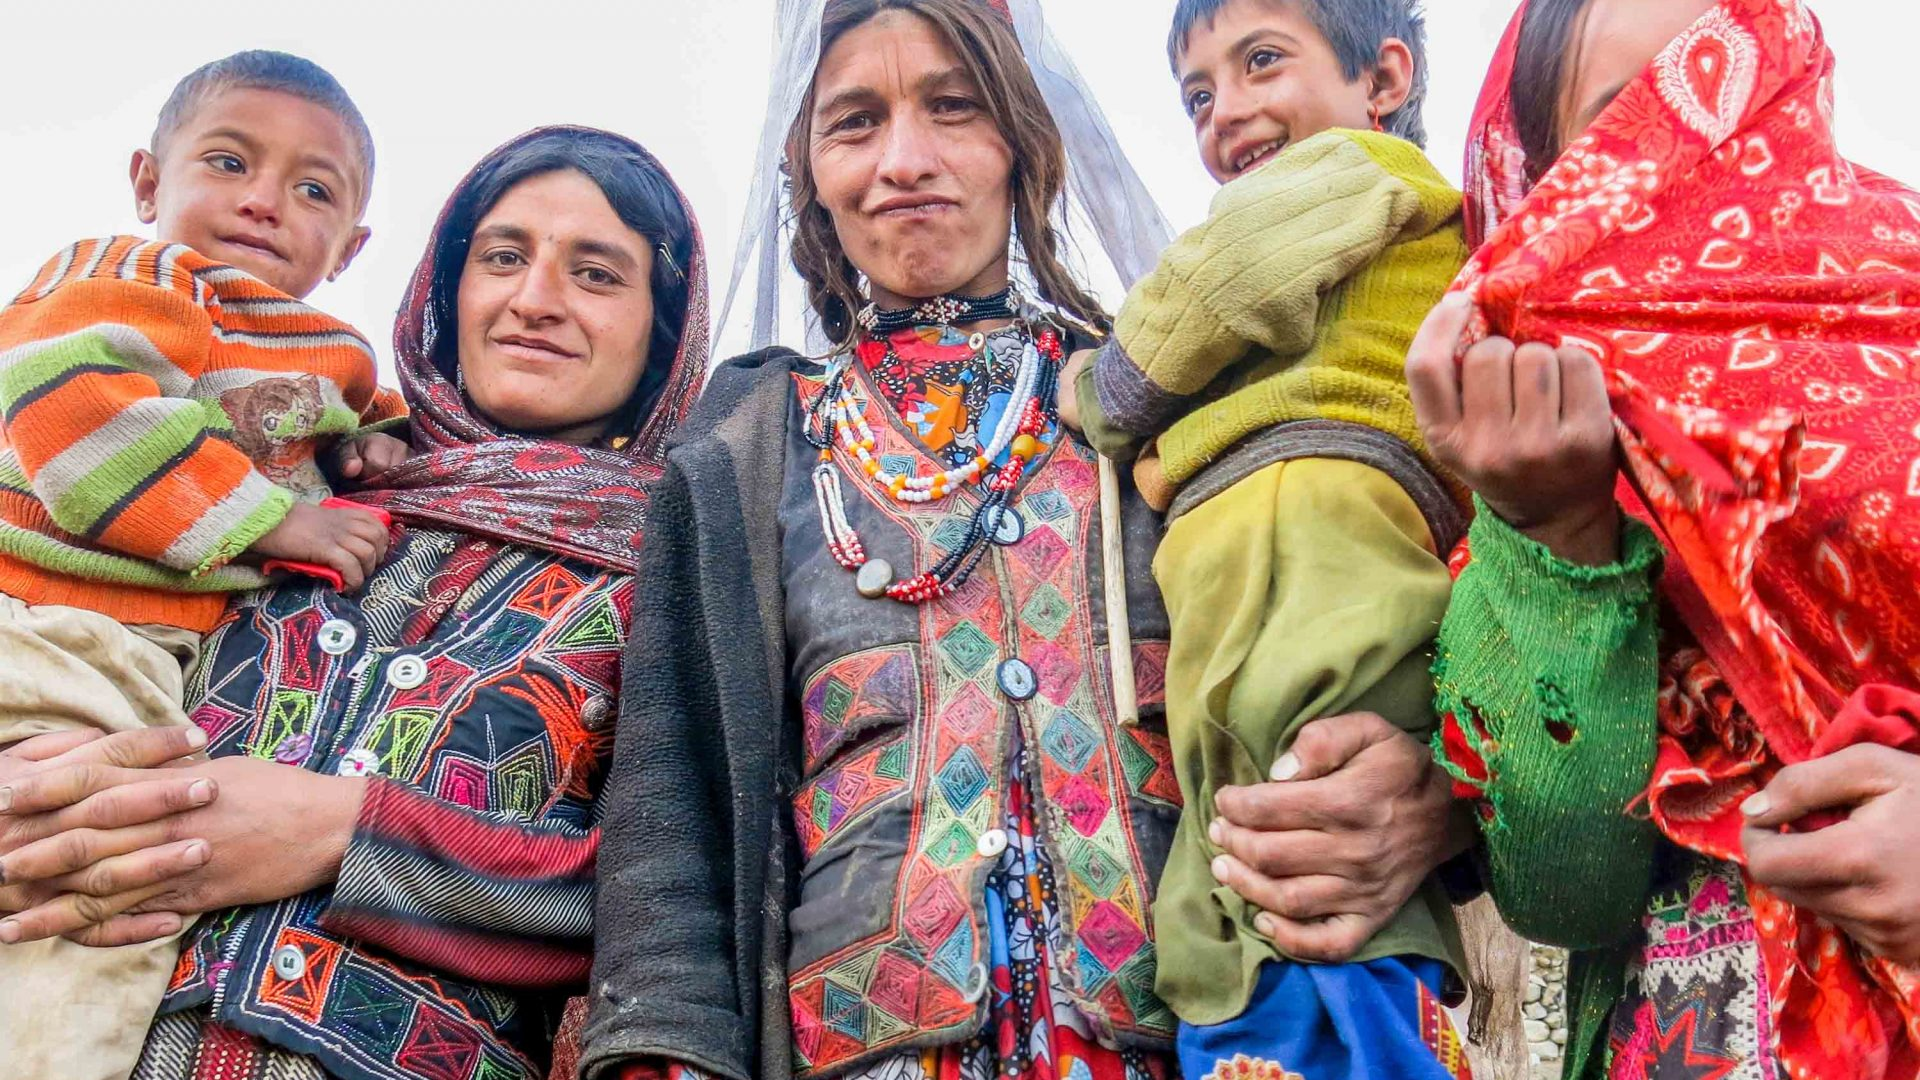 Wakhan is home to around 10,000 nomadic people of the Wakhi and Kyrghiz tribes. Here women and children pose in their traditional clothes.